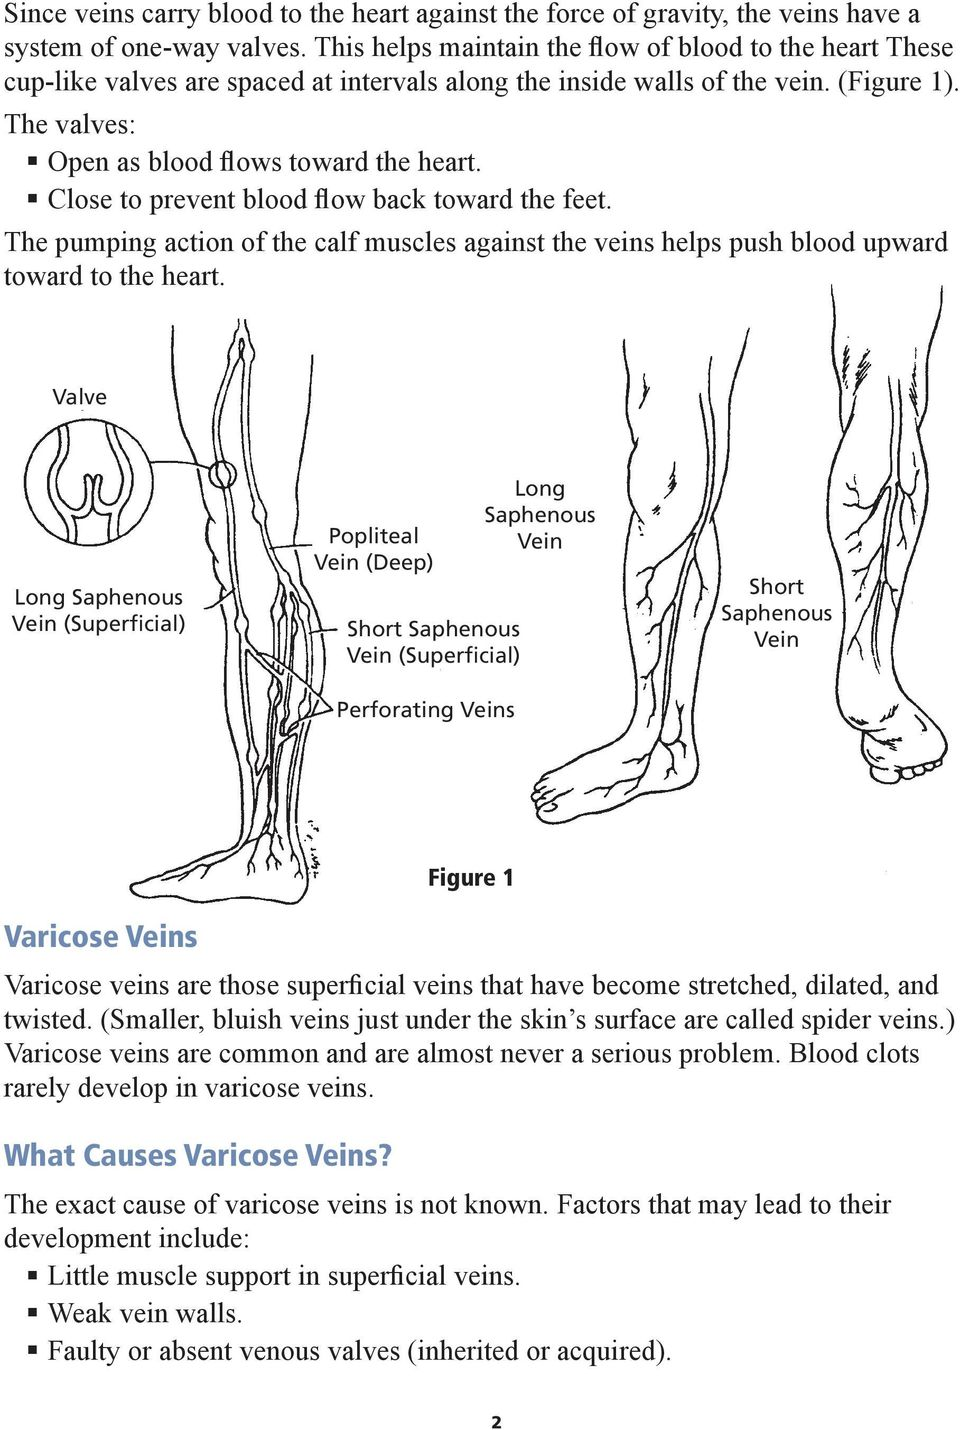 Close to prevent blood flow back toward the feet. The pumping action of the calf muscles against the veins helps push blood upward toward to the heart.